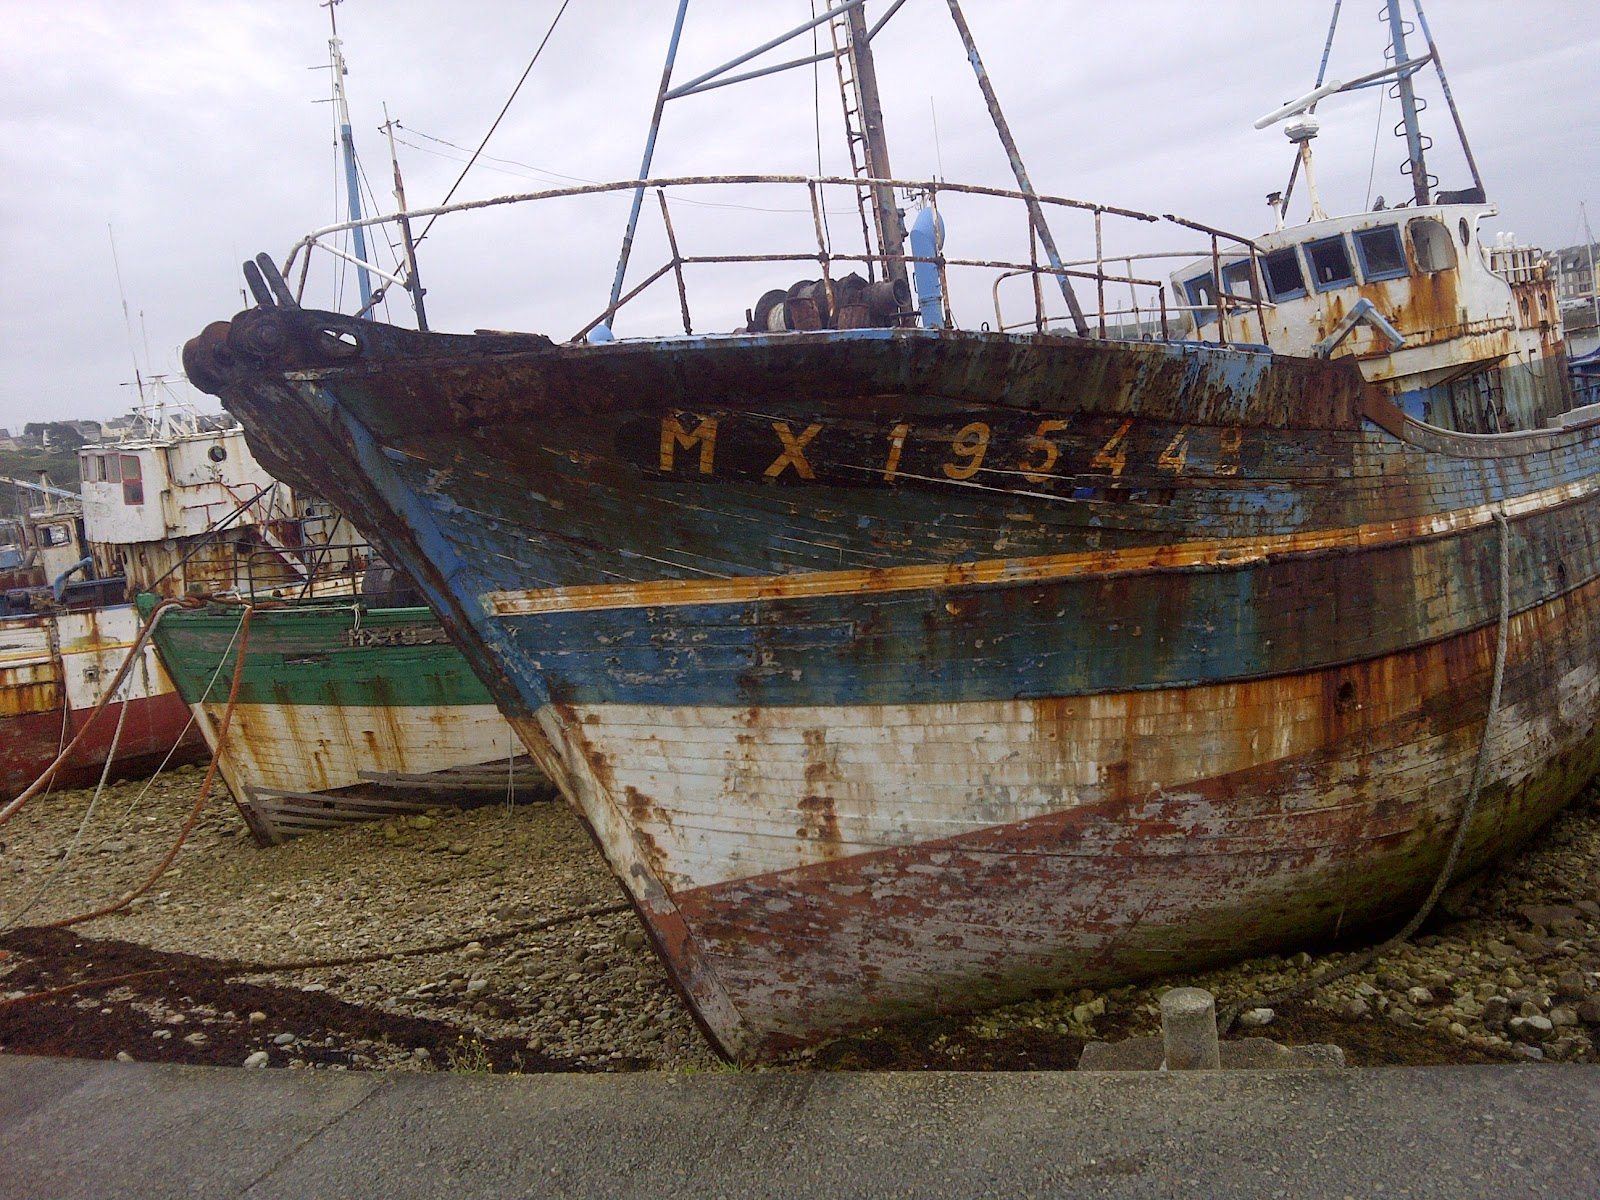 Retired fishing boats are dumped on the harbor's coast in Camaret-sur-Mer, a tradition in Brittany, France